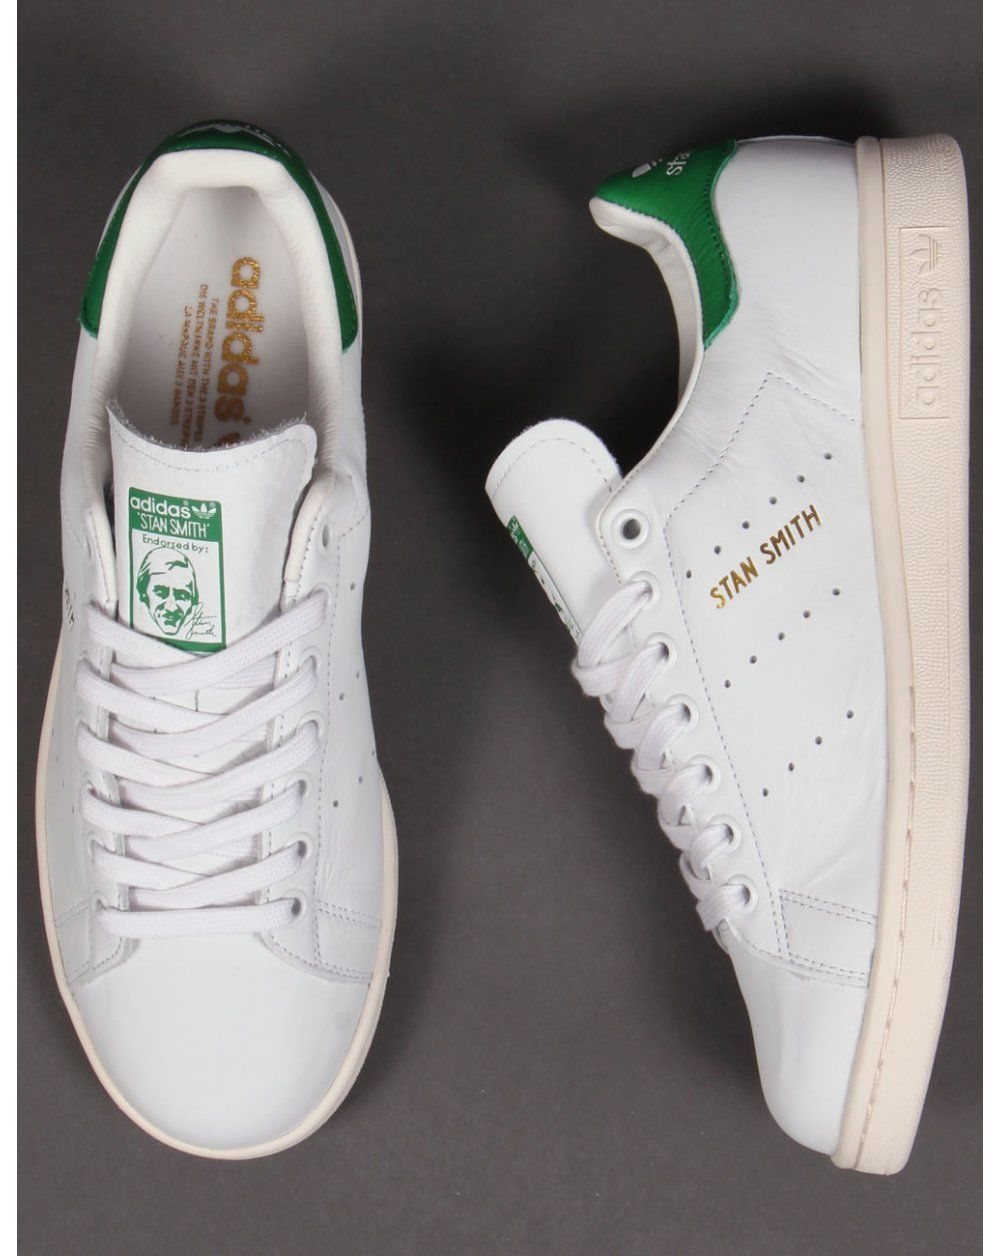 adidas originals mens stan smith updt trainers white/green